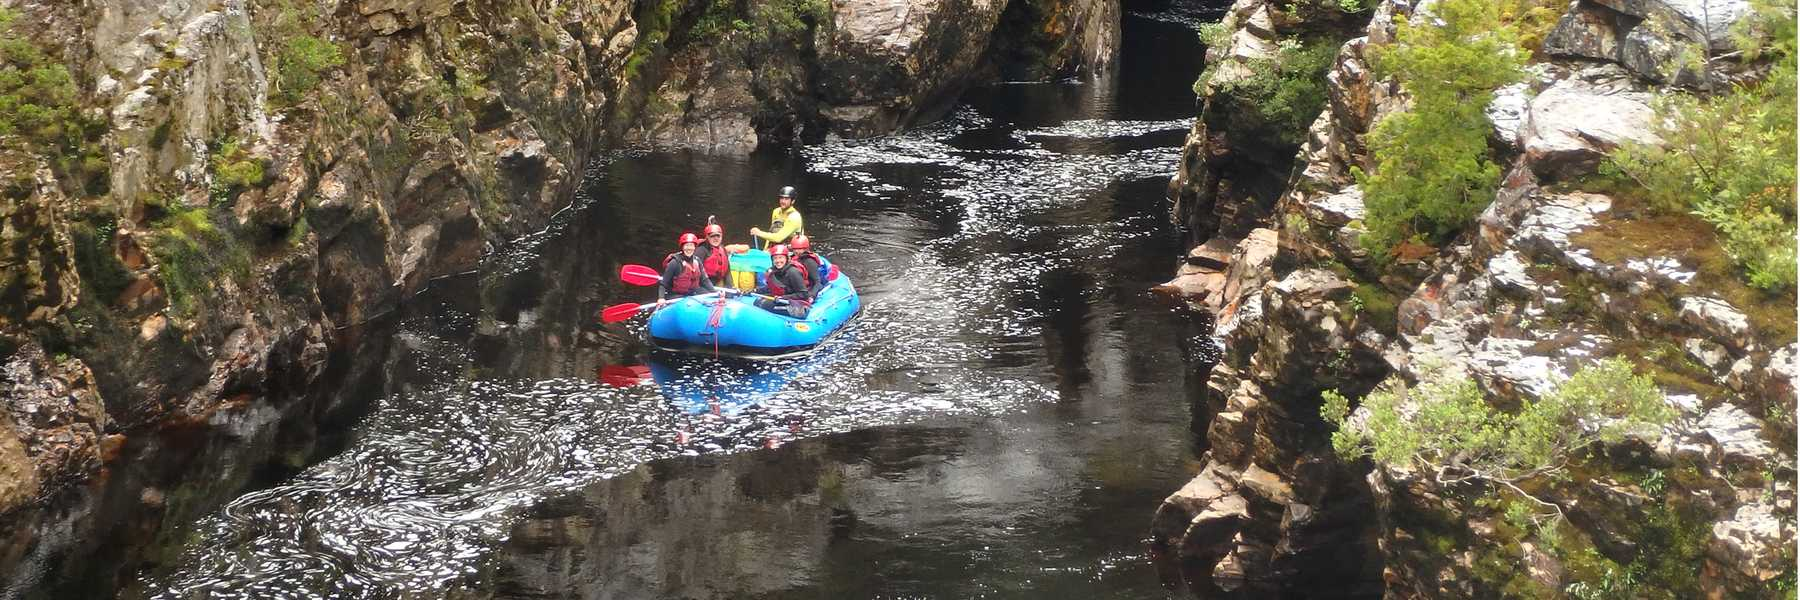 Raft drifting through the Irenabyss on the Franklin River